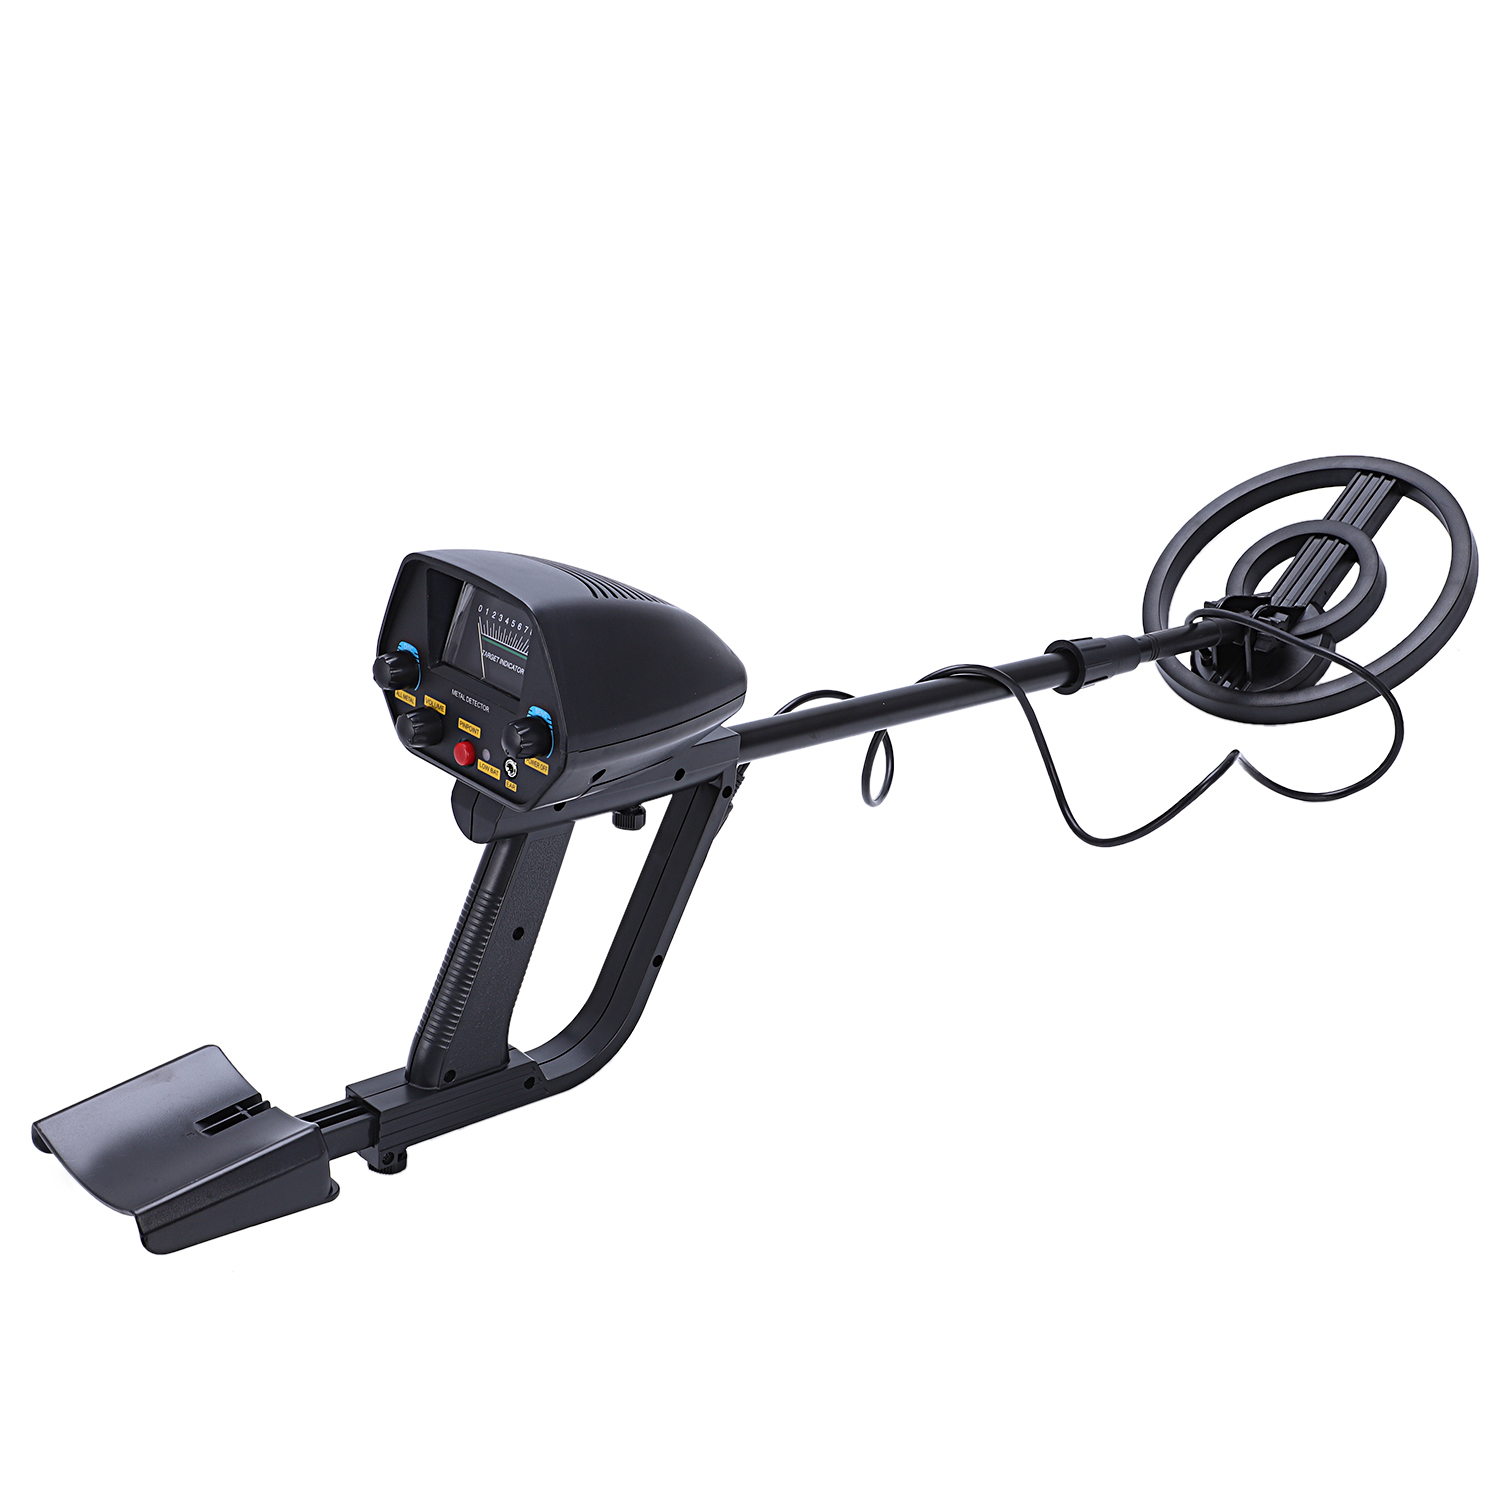 Professional Metal Detector Gold Treasure Portable Light weight Underground Metal Detector Searching Treasure MD4080 with shovel